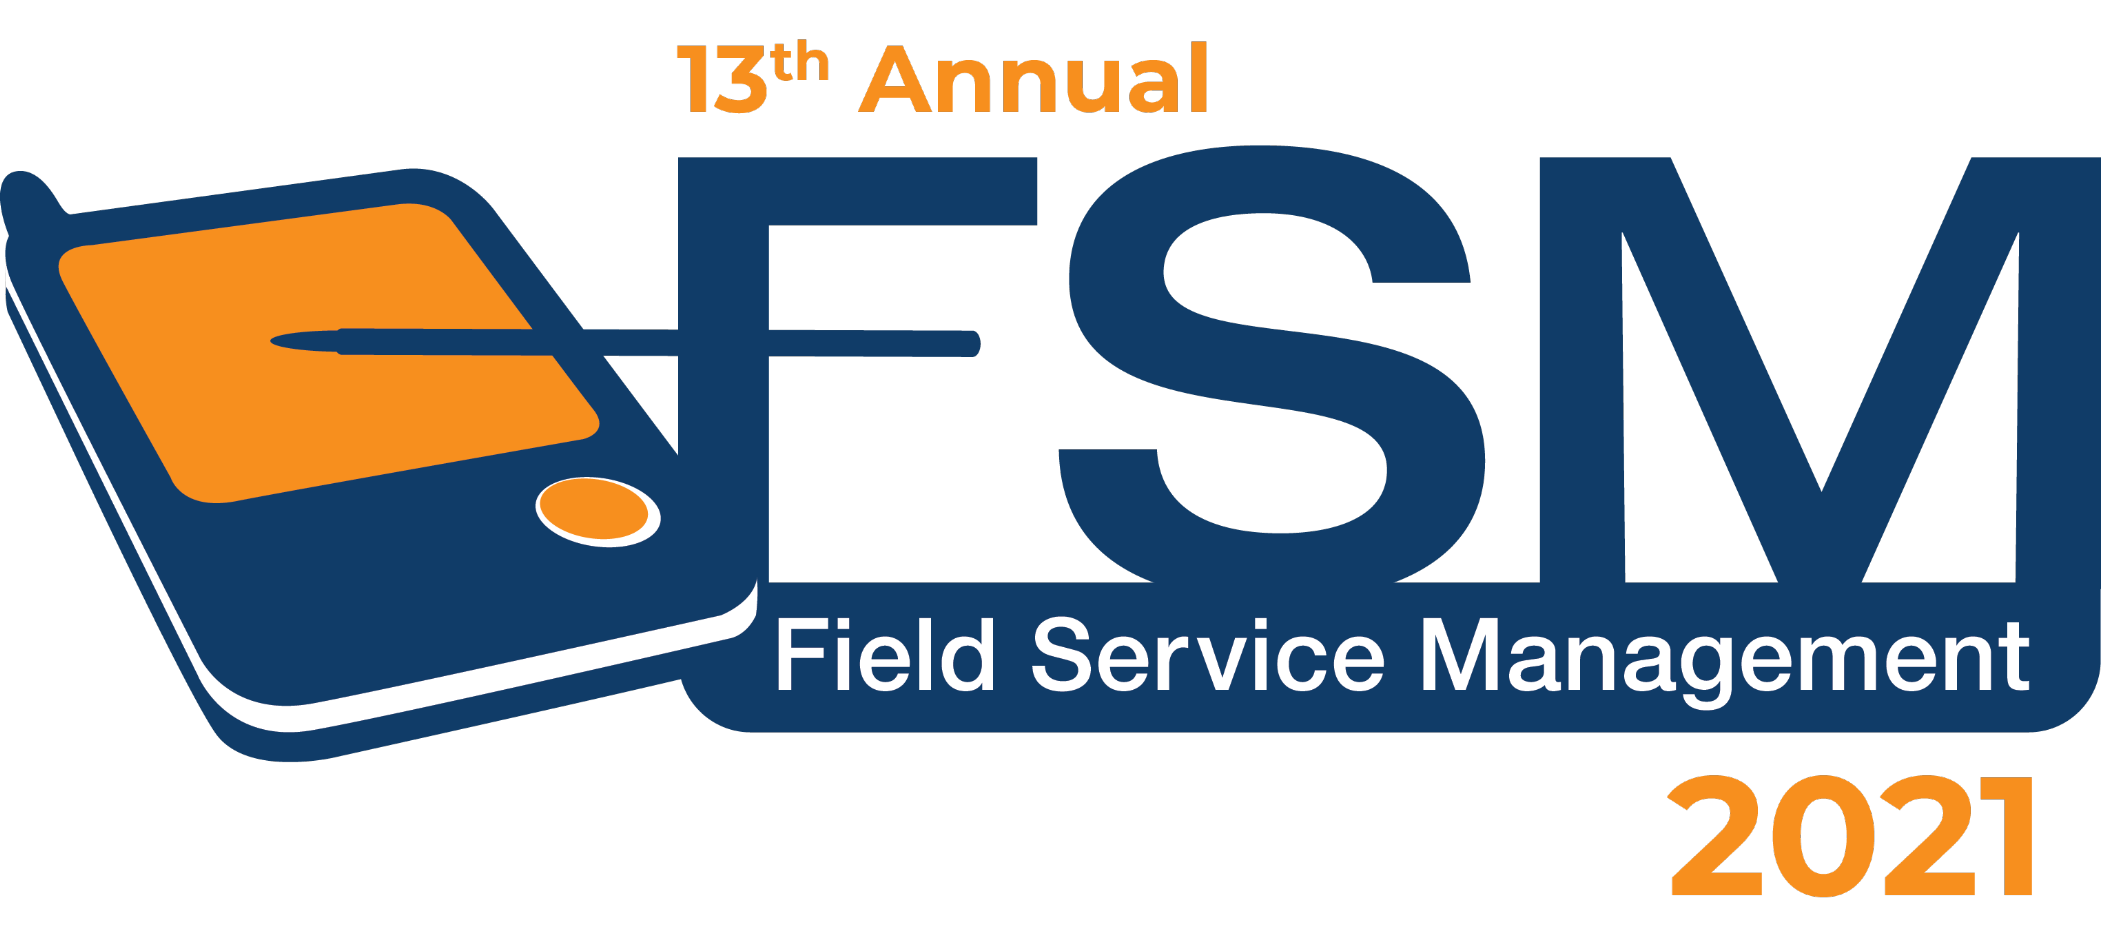 Field Service Management 2021